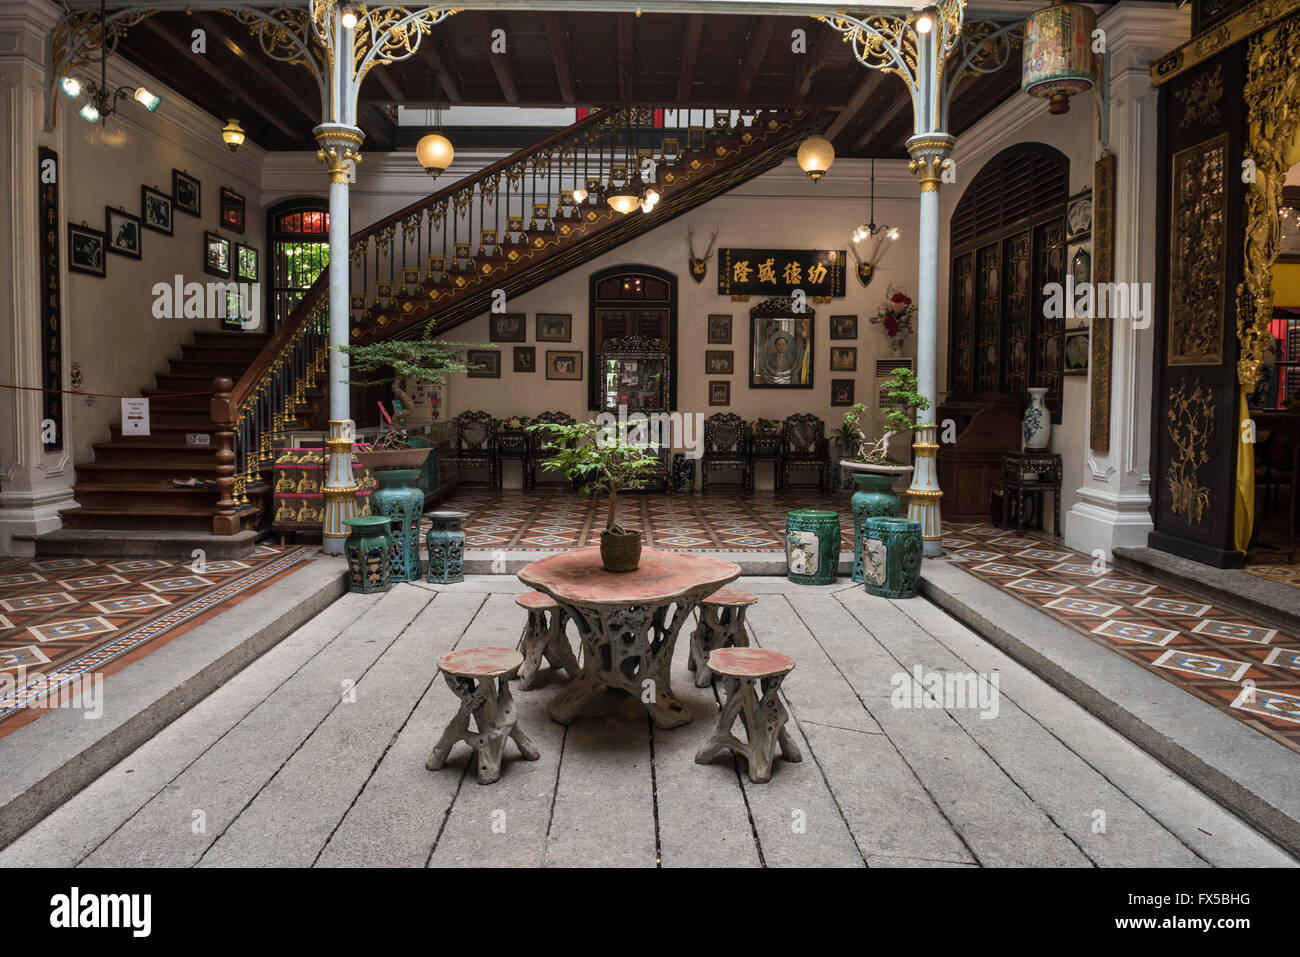 Main Courtyard in the Peranakan Mansion, George Town, Penang - Stock Image